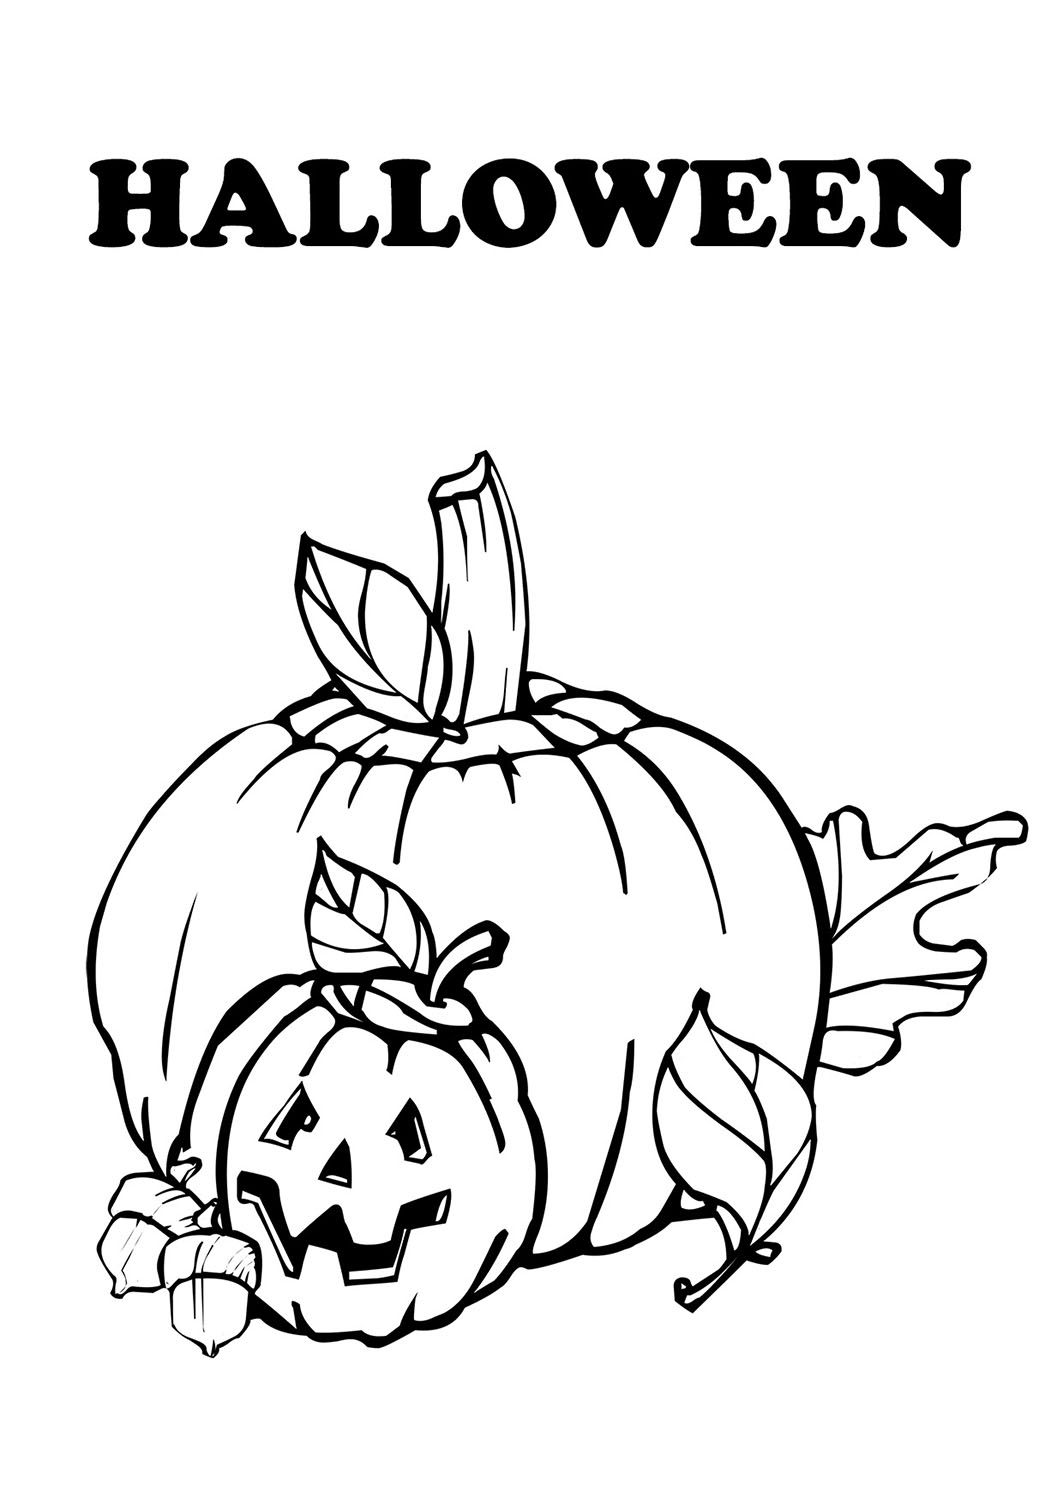 haloween coloring pages halloween coloring pages to download and print for free coloring pages haloween